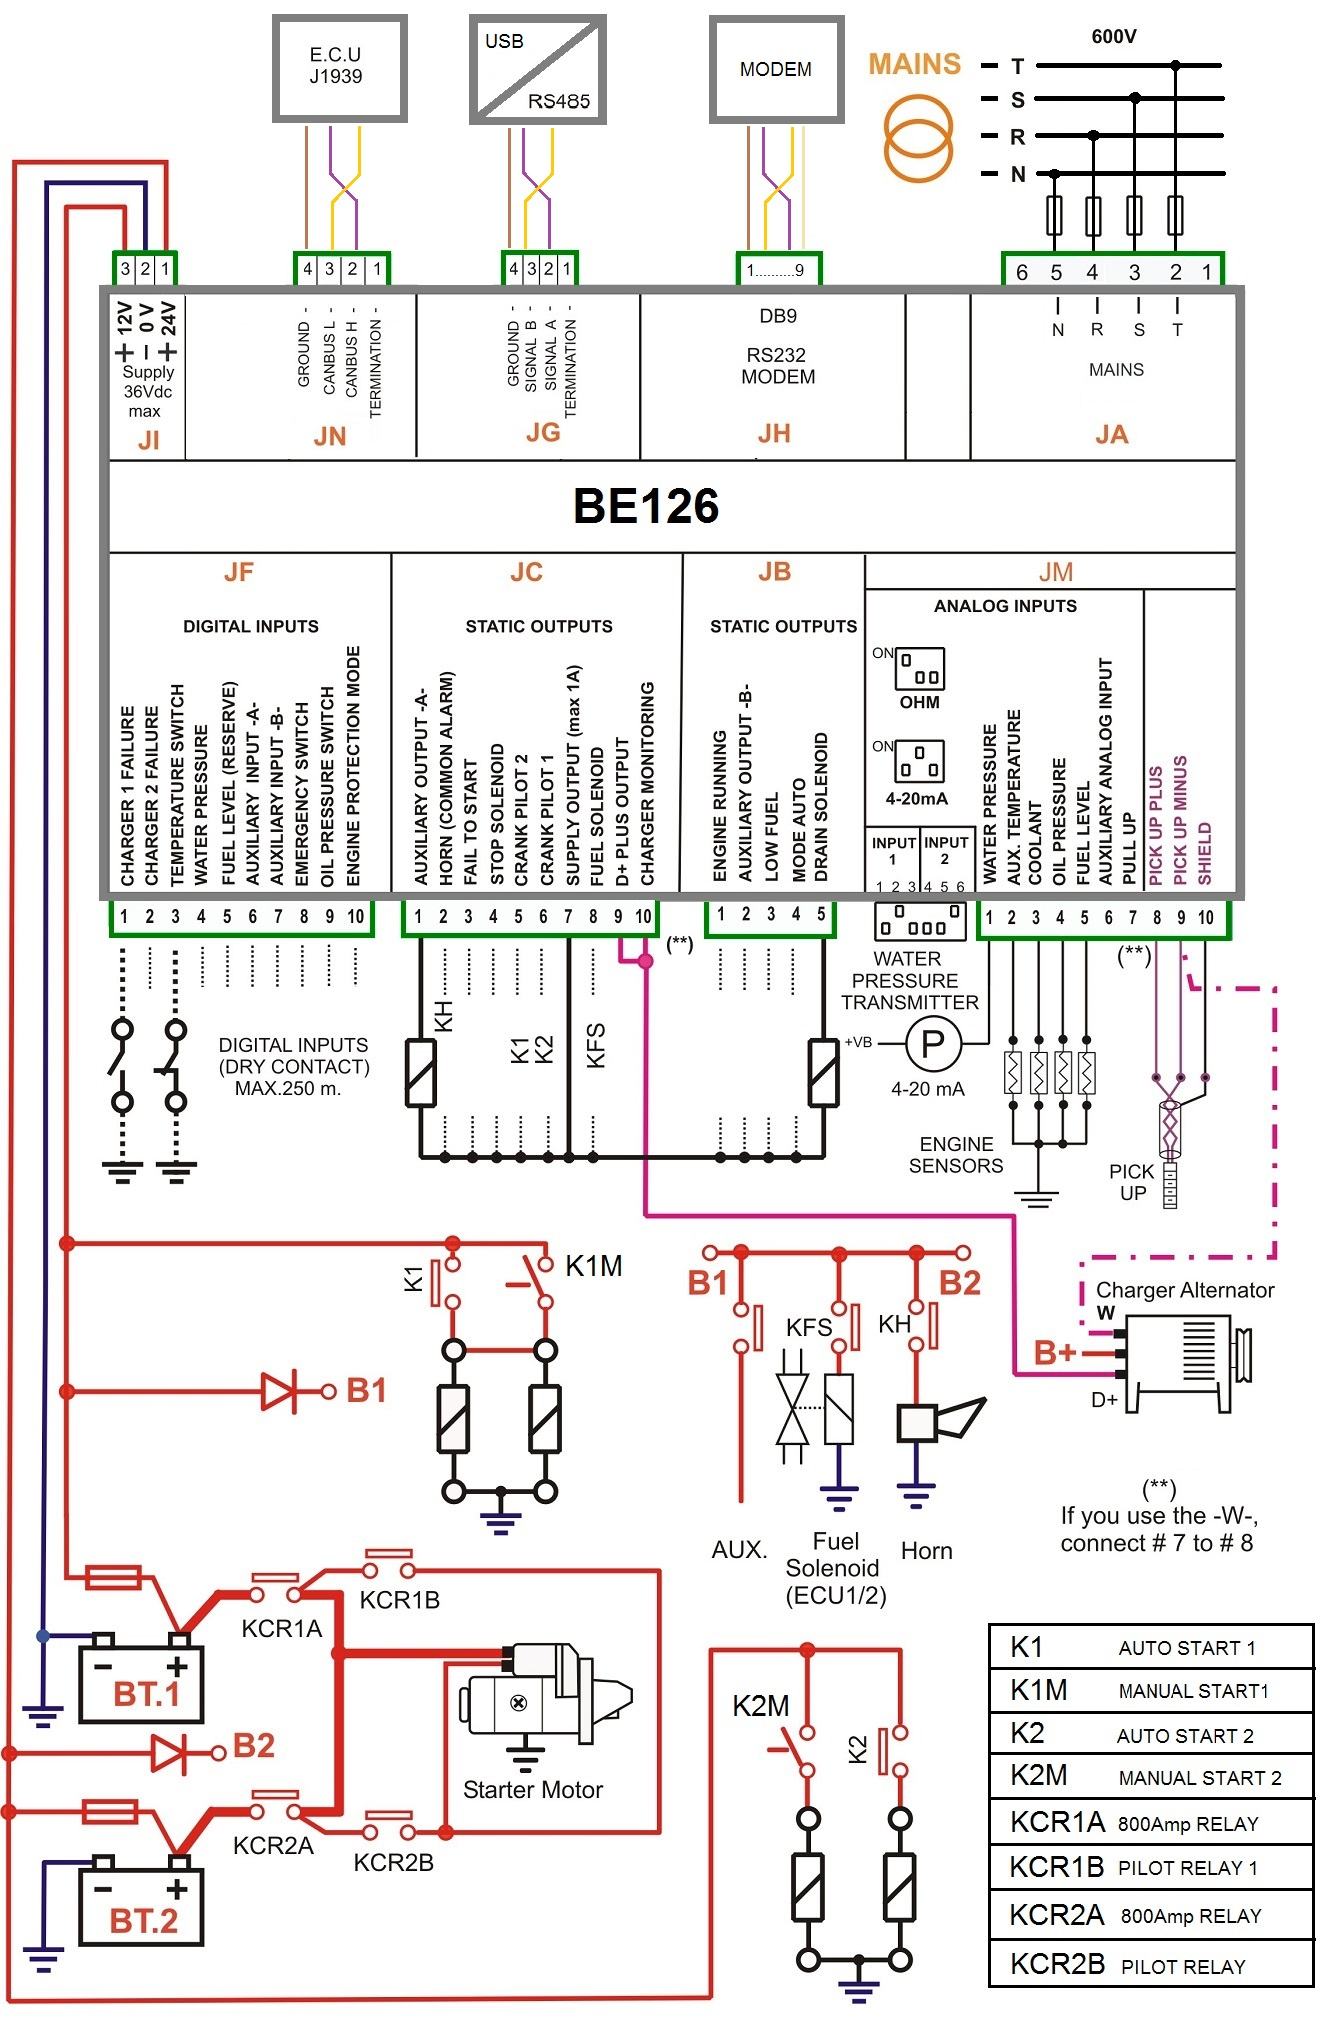 NFPA20 fire pump controller wiring diagram fire pump controller wiring diagram genset controller z50a k2 wiring diagram at panicattacktreatment.co